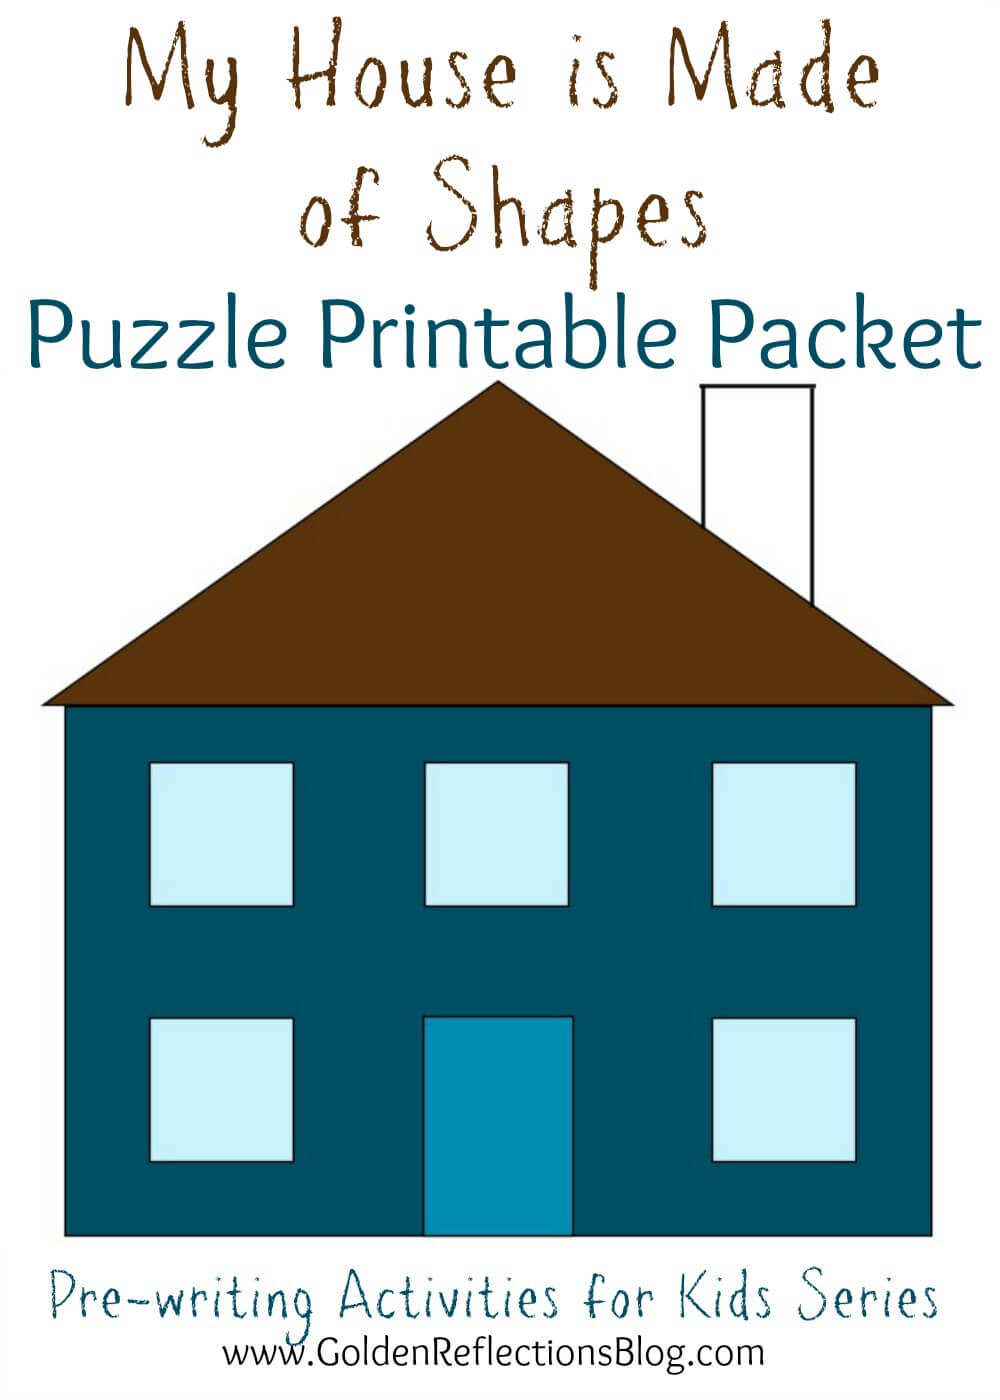 My House Is Made Of Shapes Diy Puzzle Printable Packet : Pre-Writing - Printable Puzzle Packet